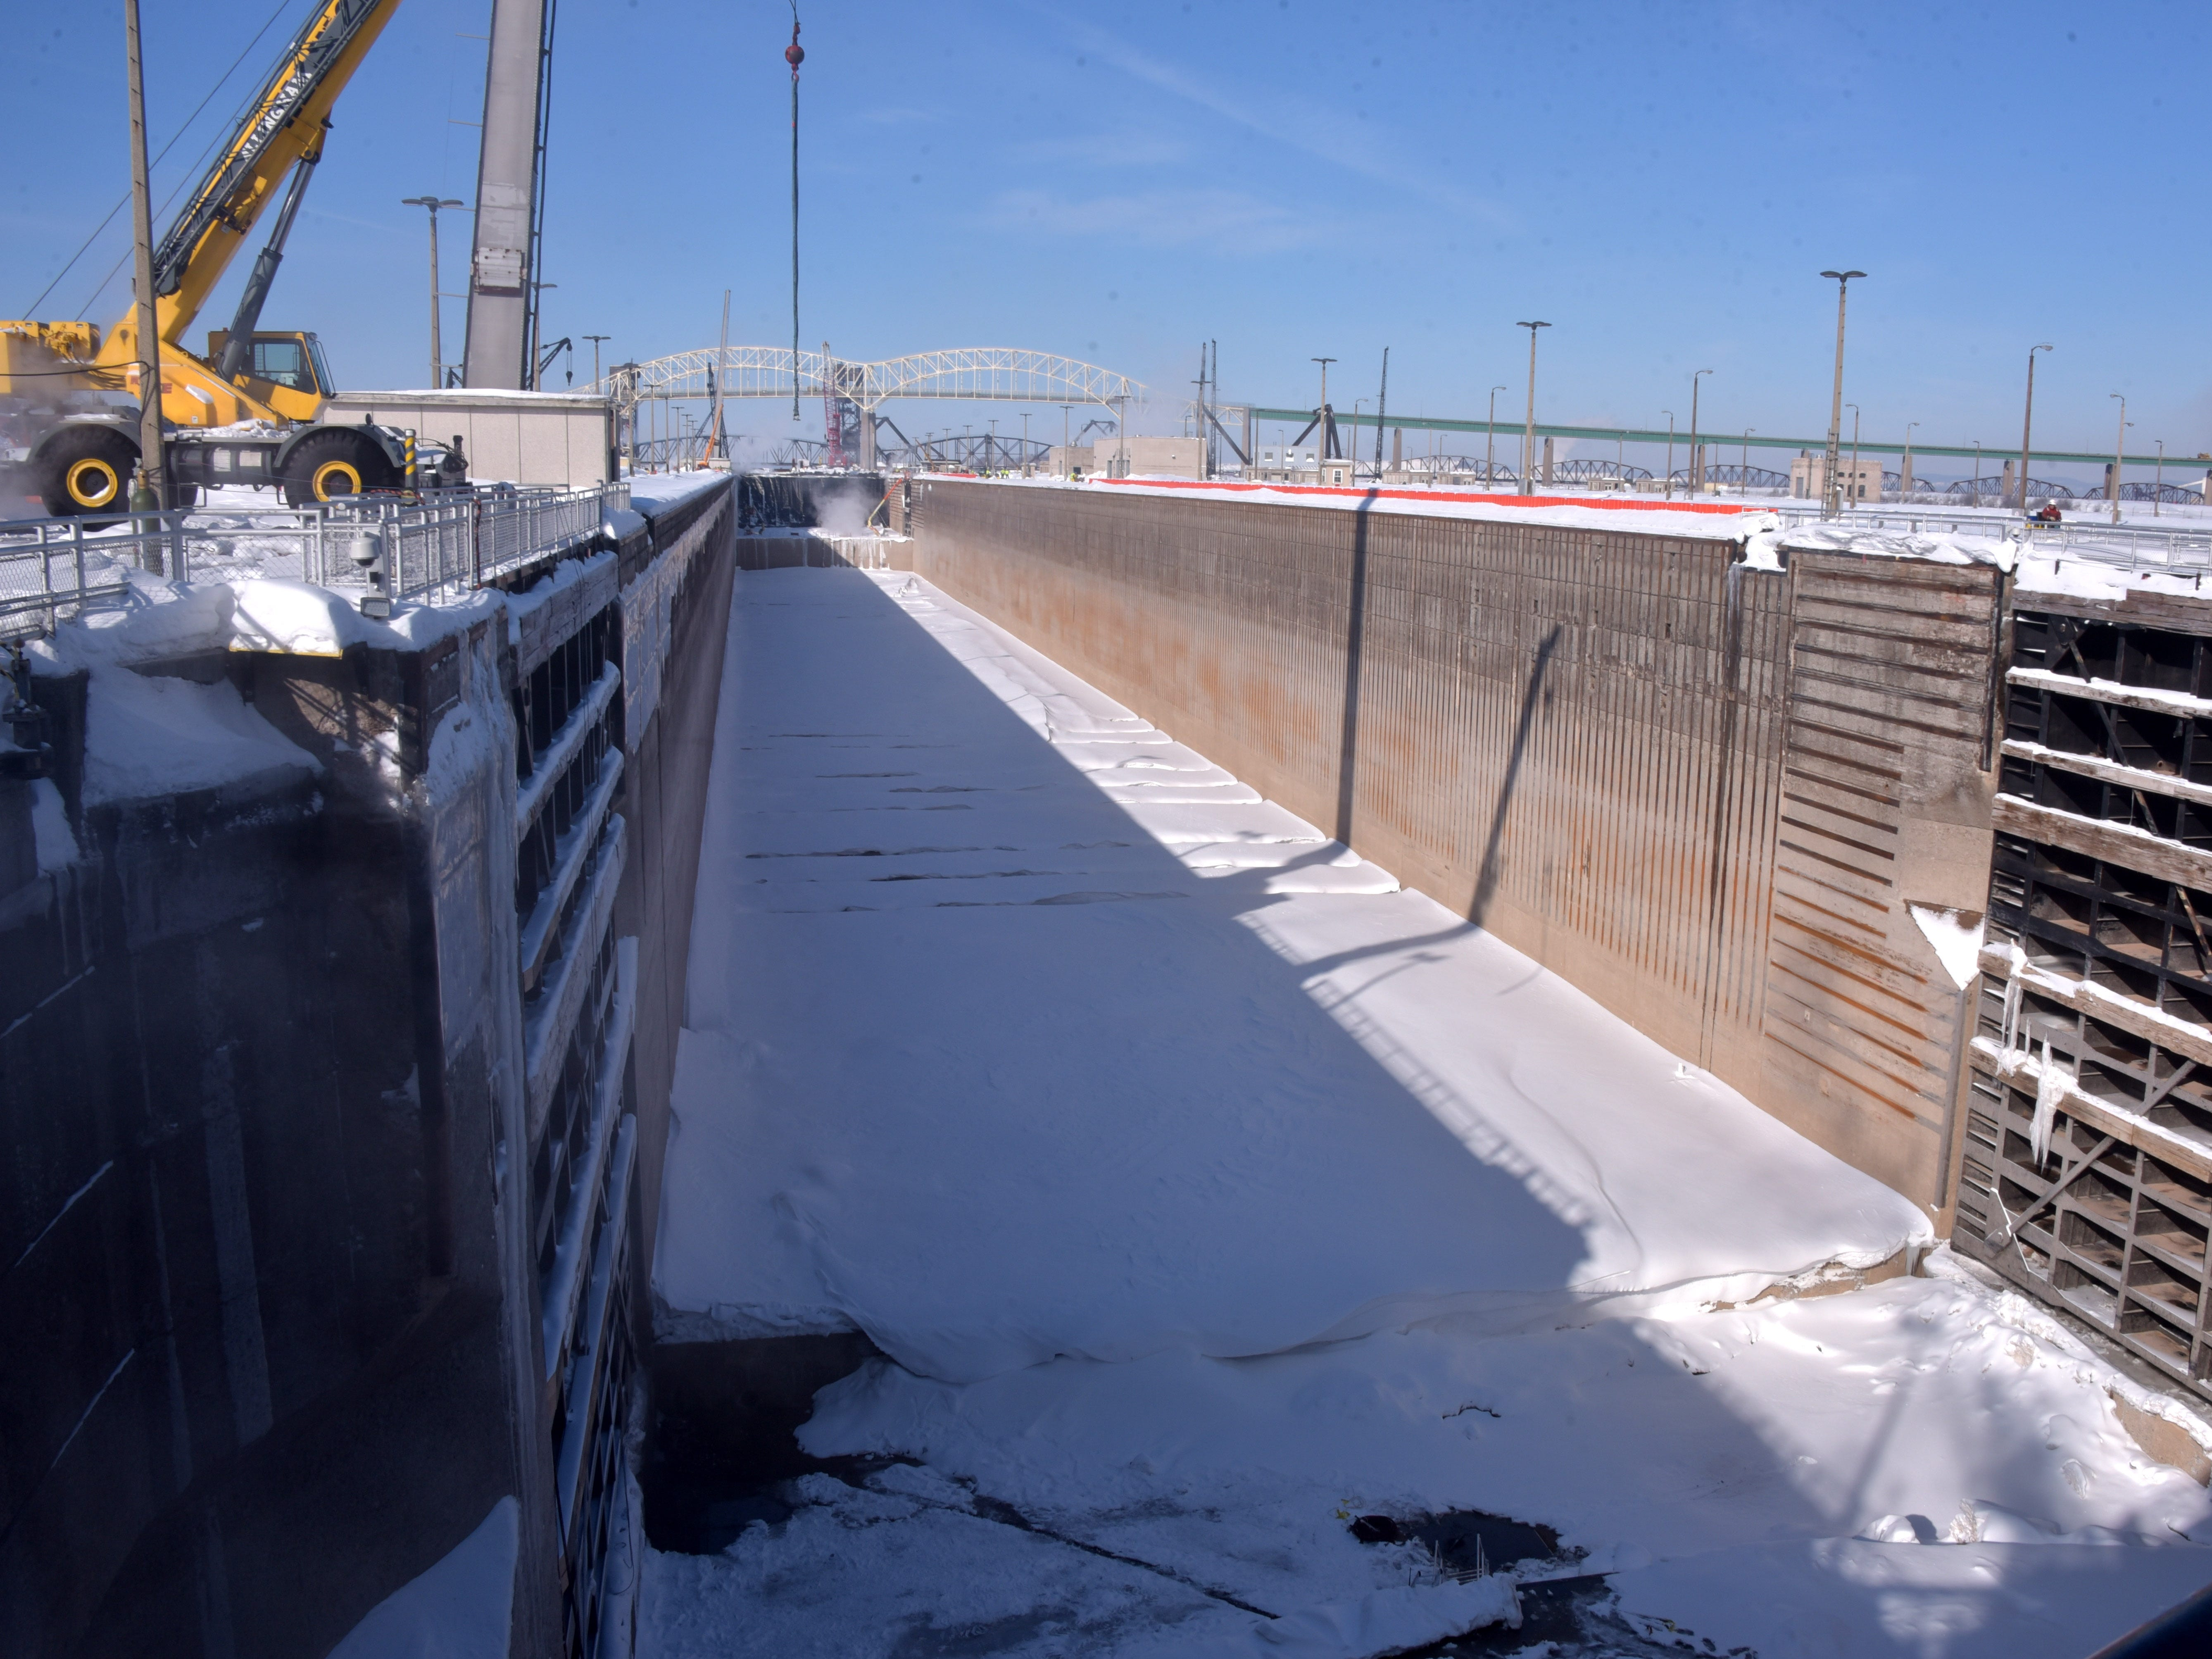 The Poe Lock, 1,350 feet long, is empty of water, after repairs and maintenance wind down during a 10-week maintenance schedule.